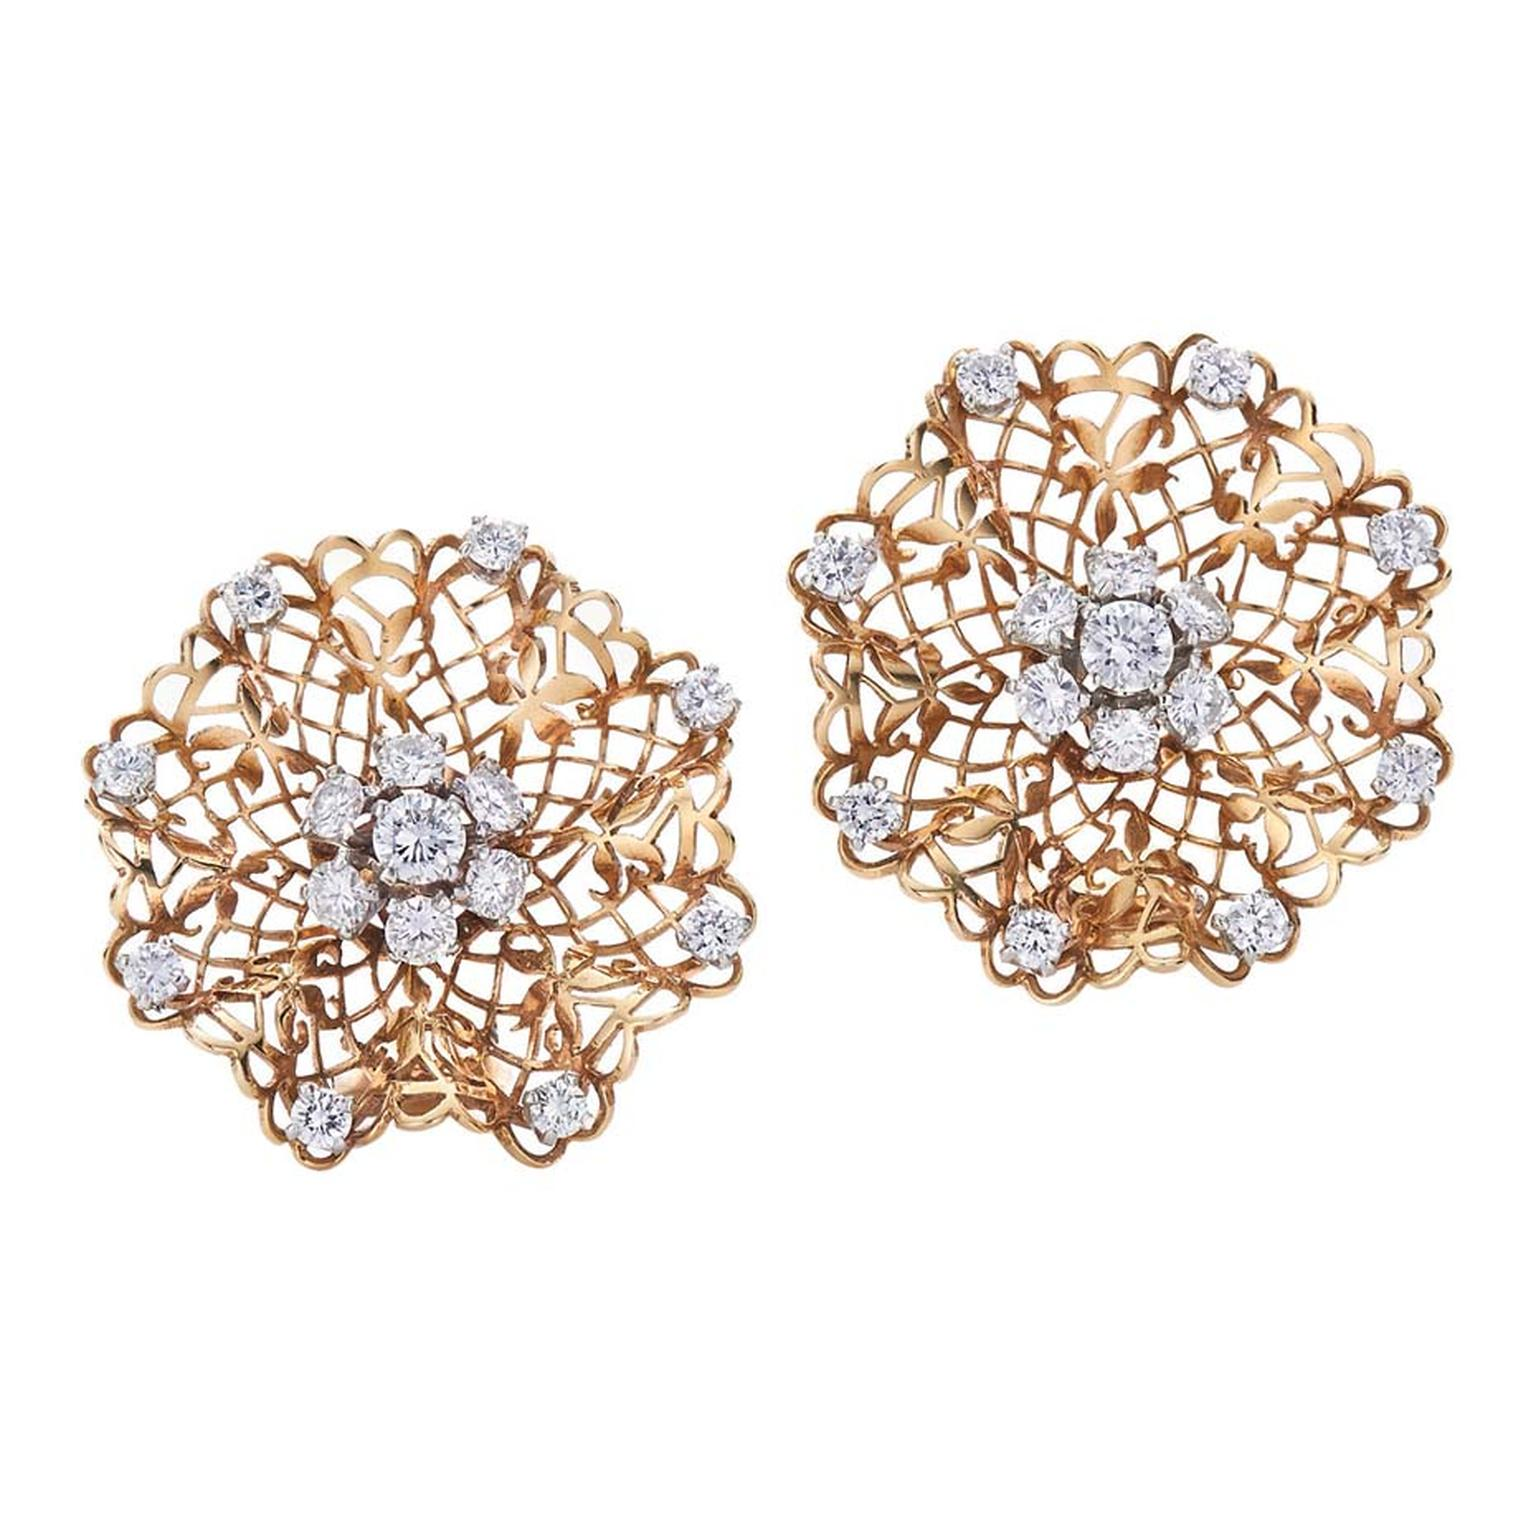 Van Cleef & Arpels yellow gold and diamond Handkerchief Earrings, available from Fred Leighton at 1stdibs.com ($30,000).